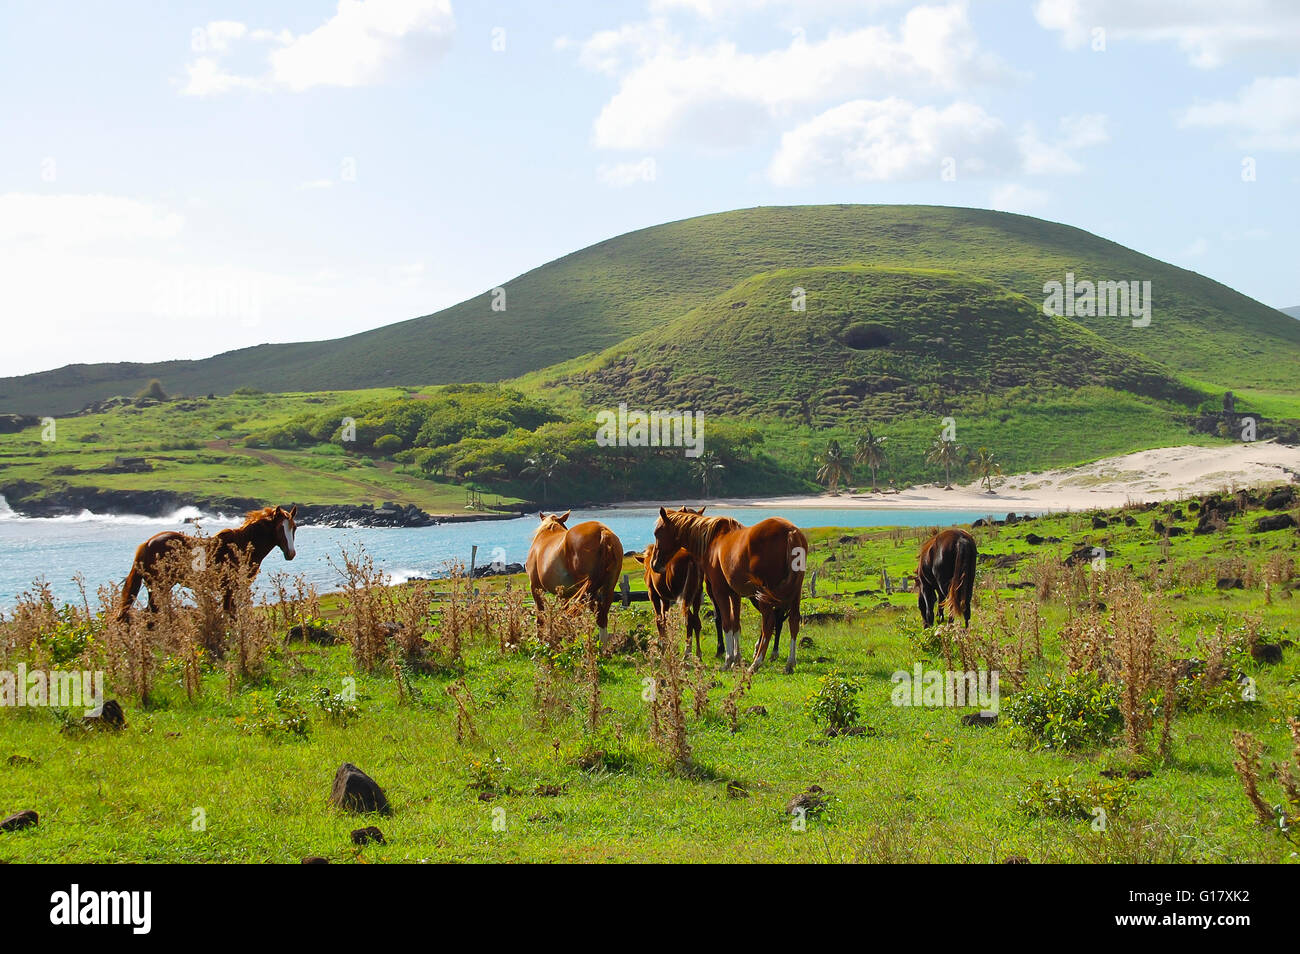 Horses on Coastal Pasture - Easter Island - Stock Image